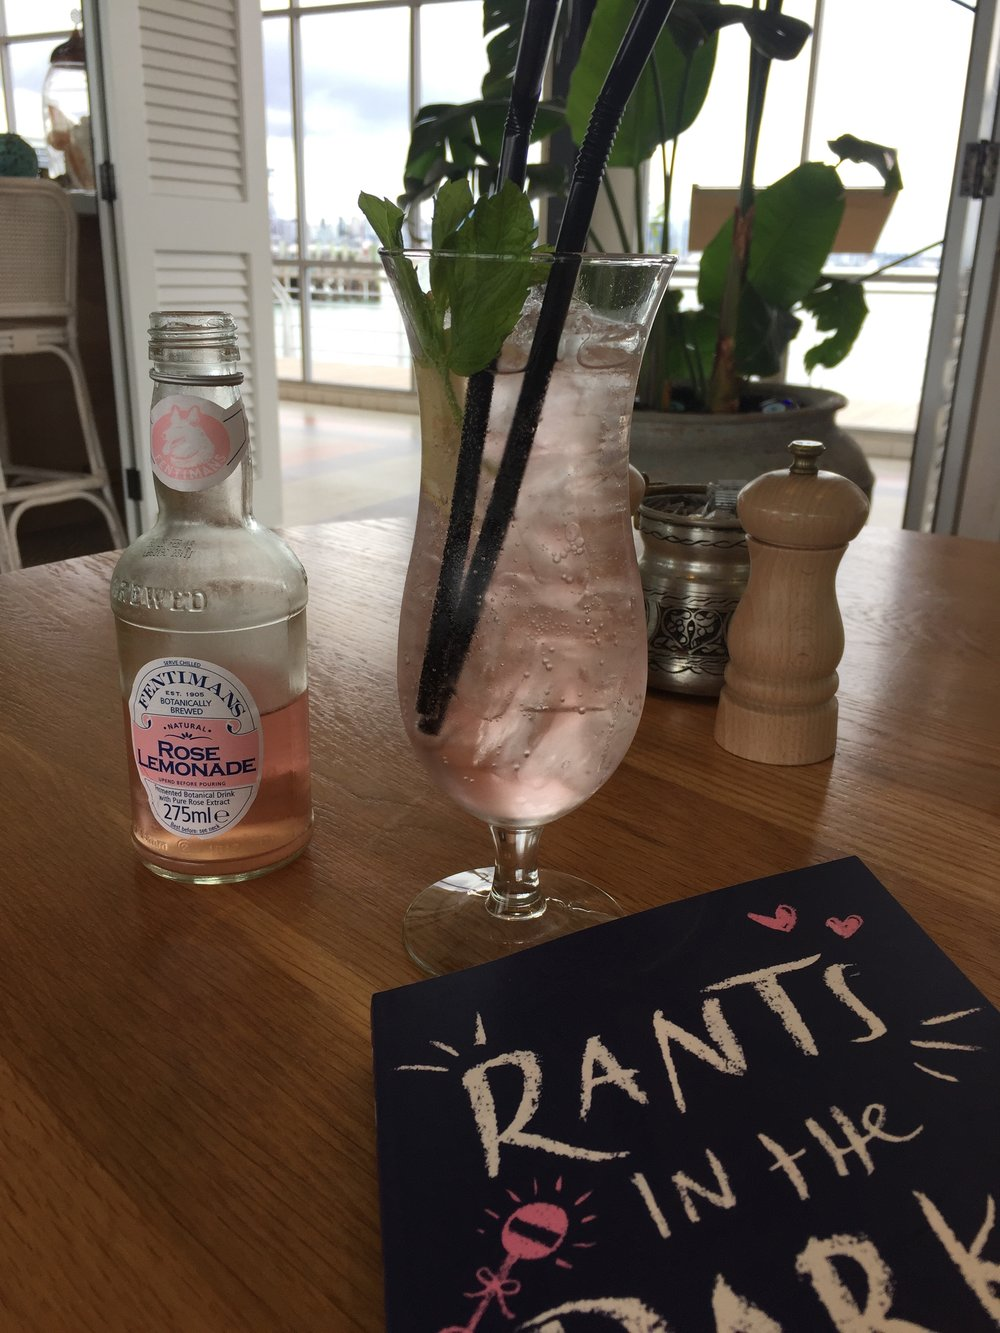 Rose lemonade and my new book at Devon on the Wharf.